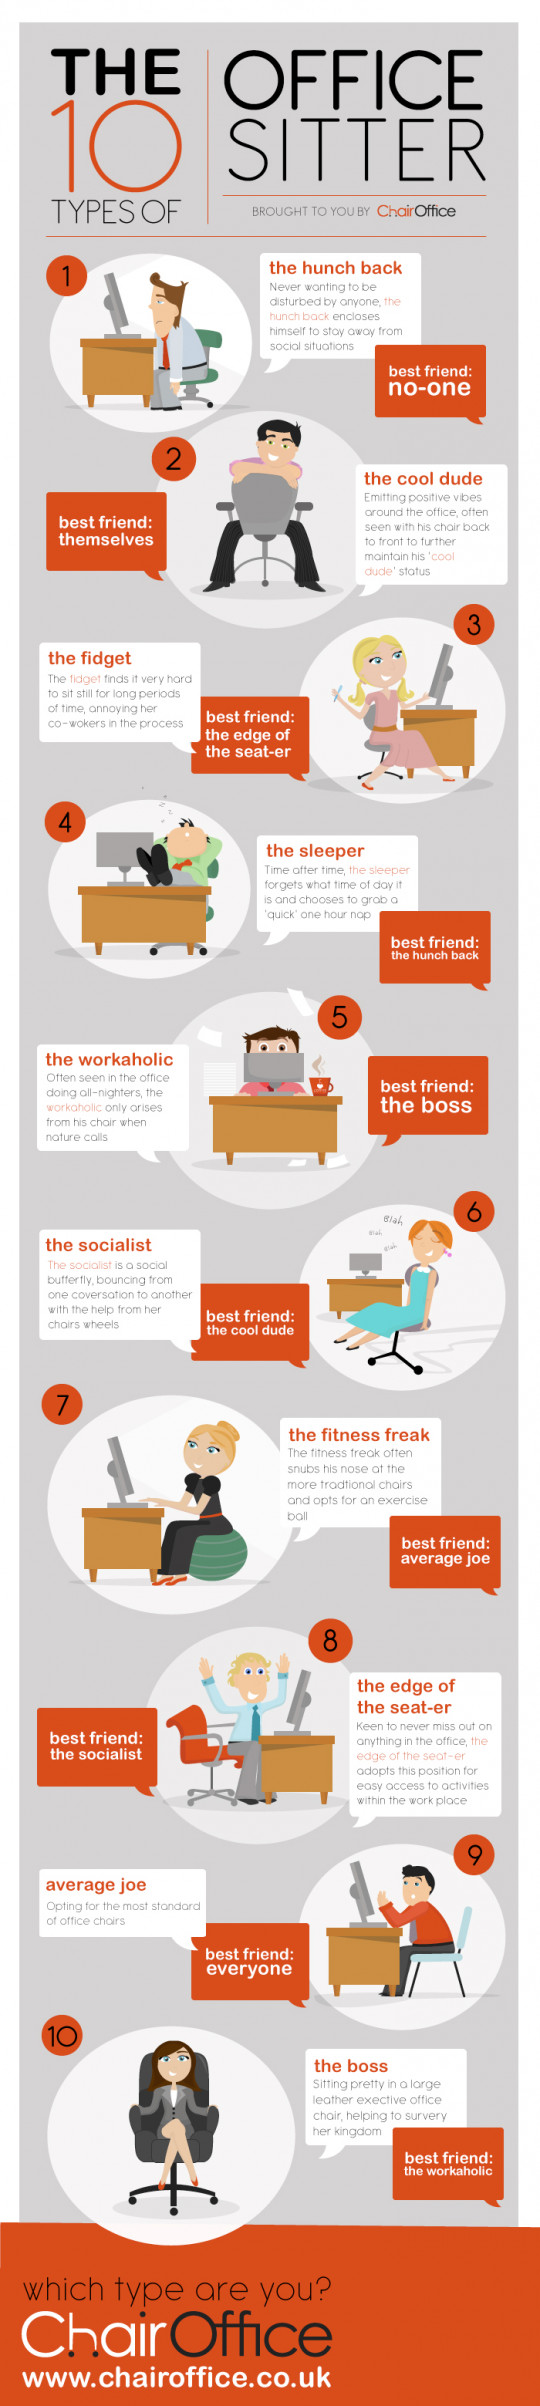 The 10 types of Office Sitter